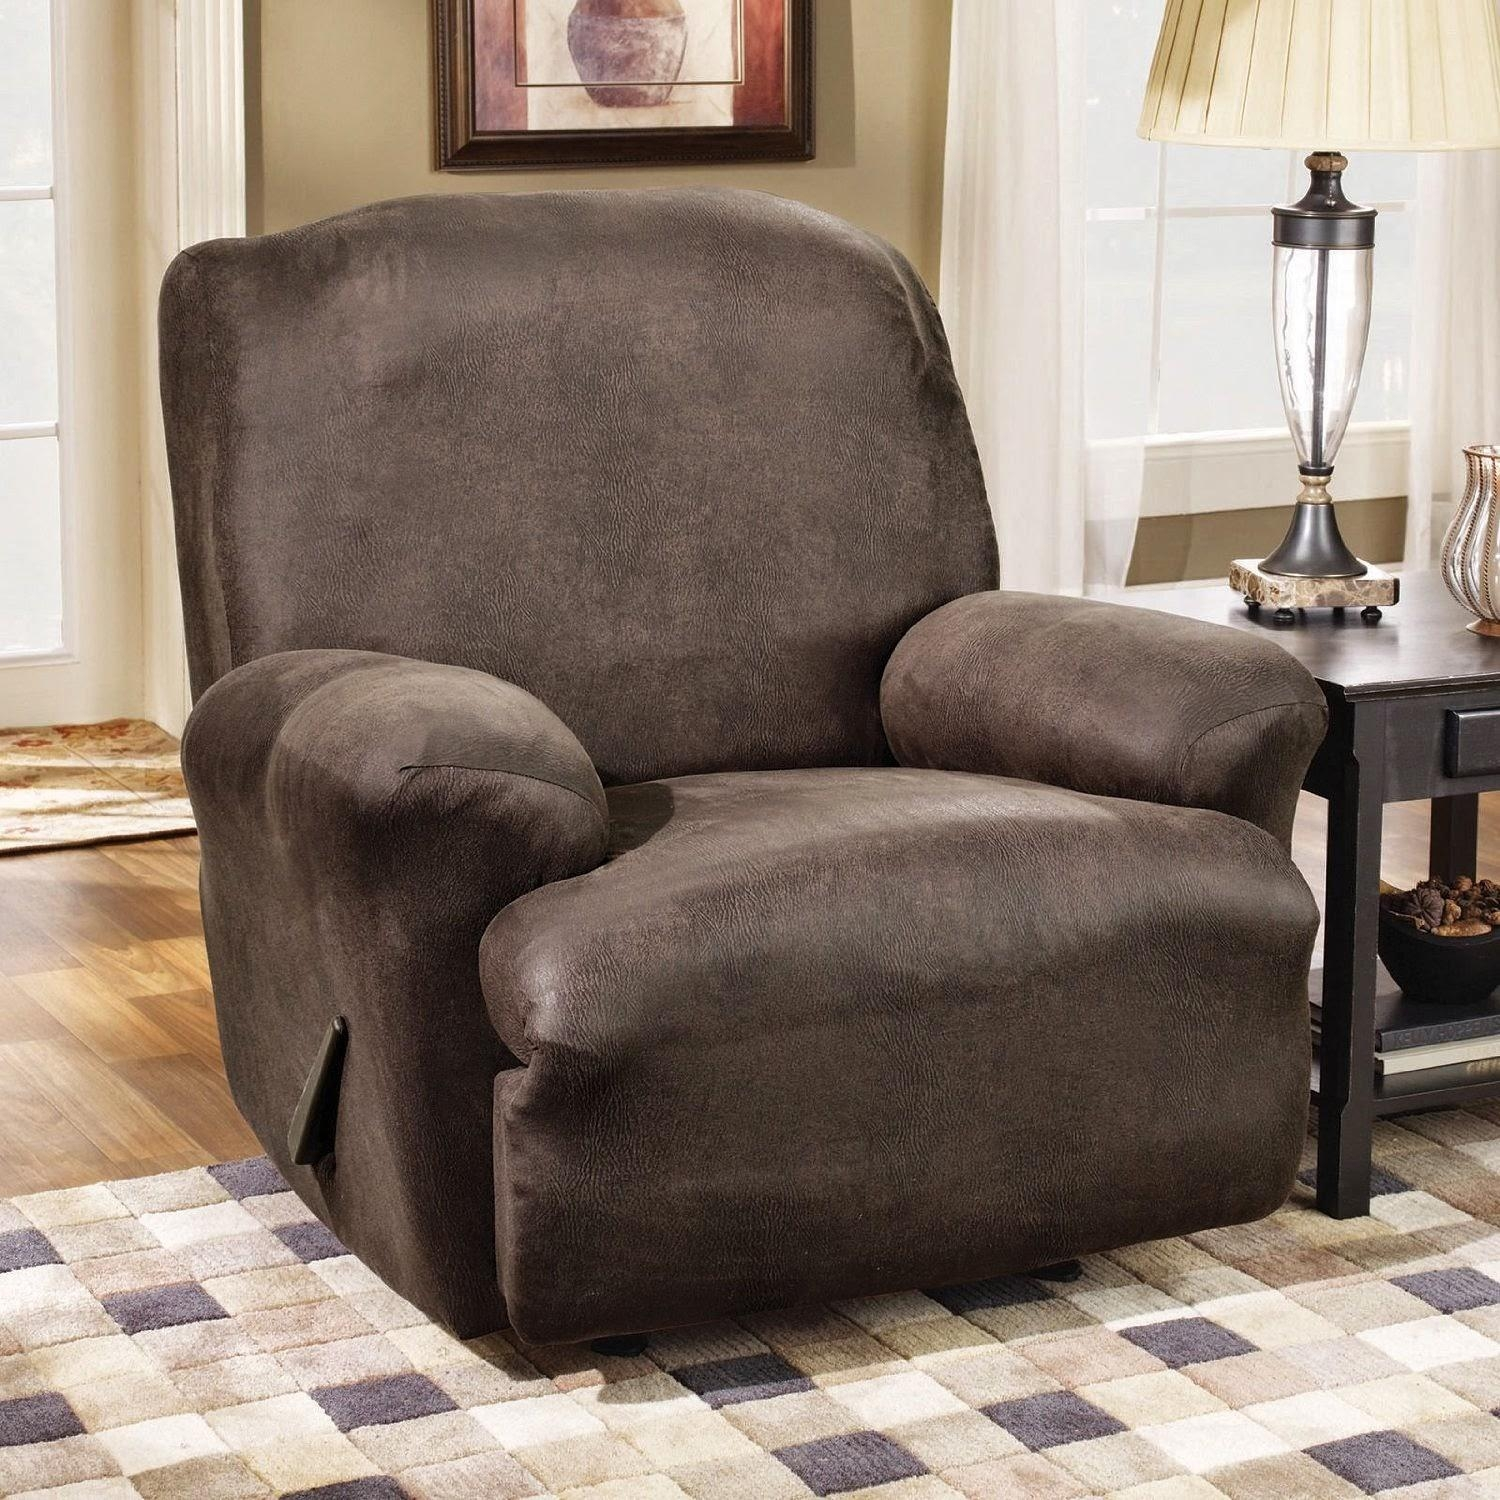 Sofas Center : Reclining Sofa Slipcover Awesome Images Throughout Recliner Sofa Slipcovers (Image 19 of 20)